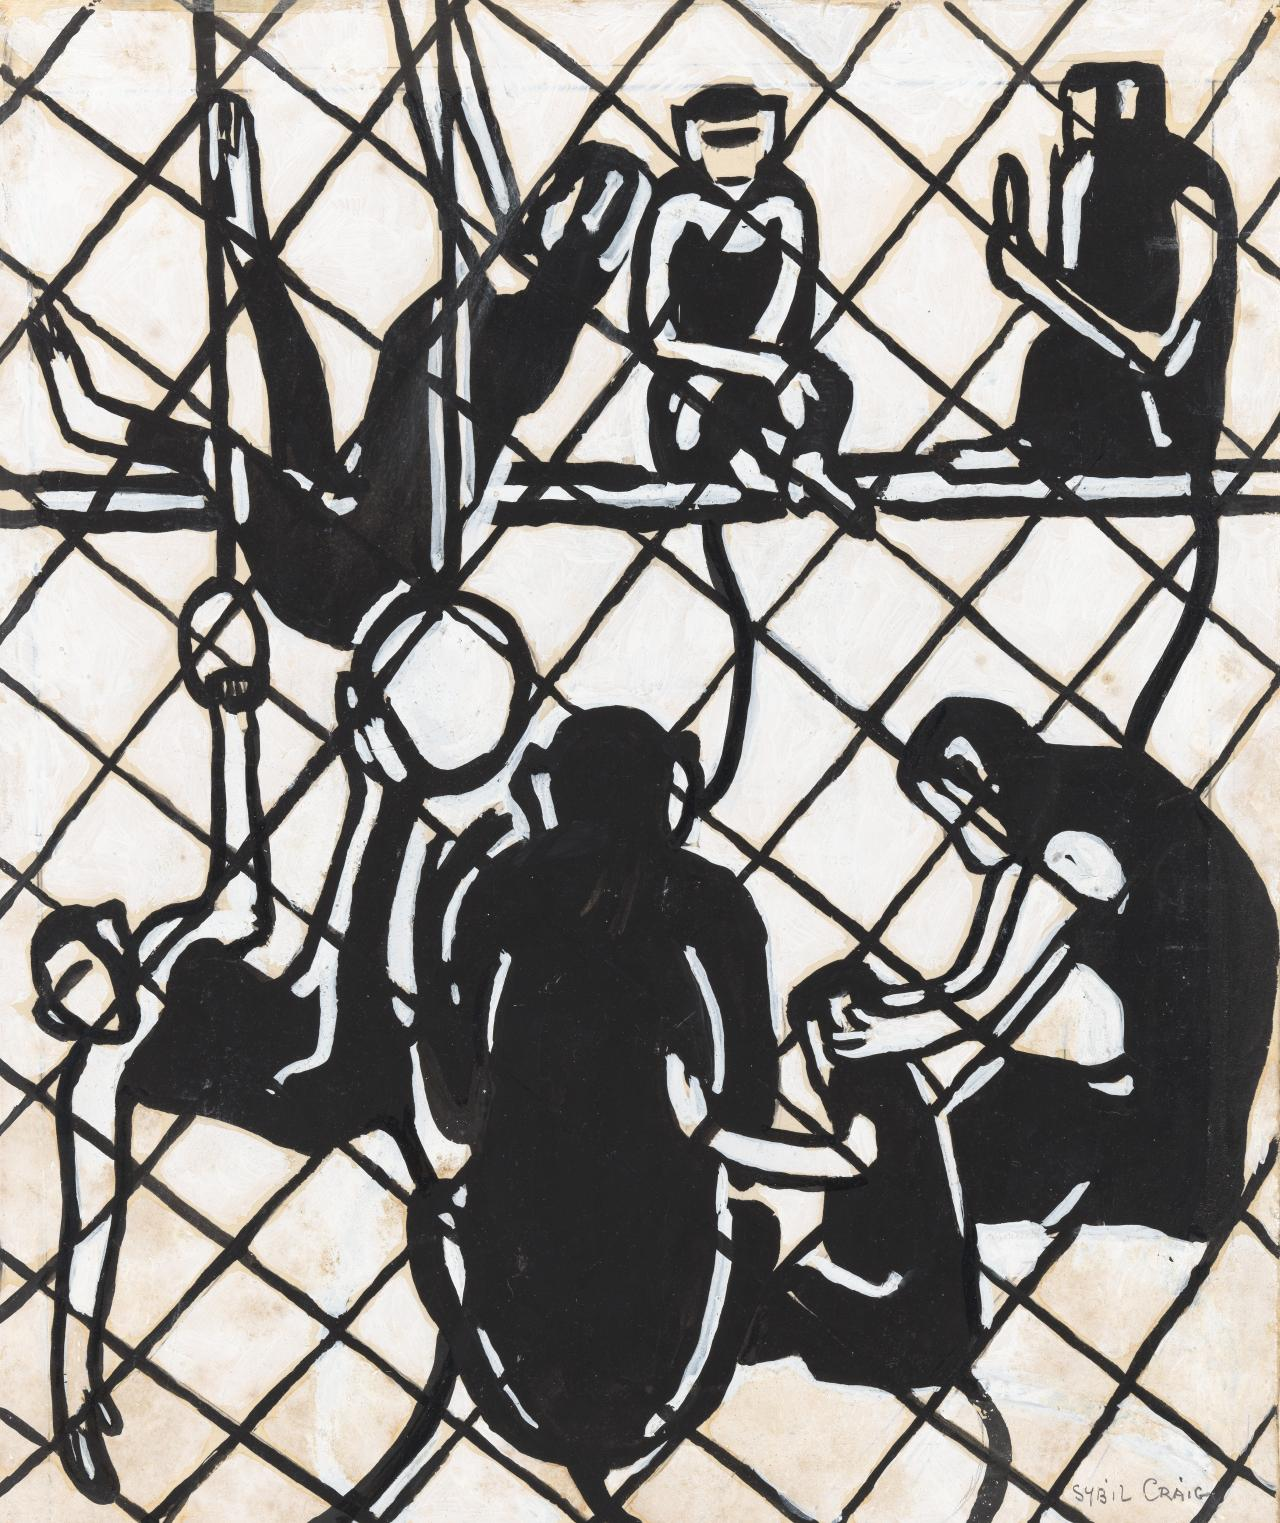 Seven monkeys in a cage